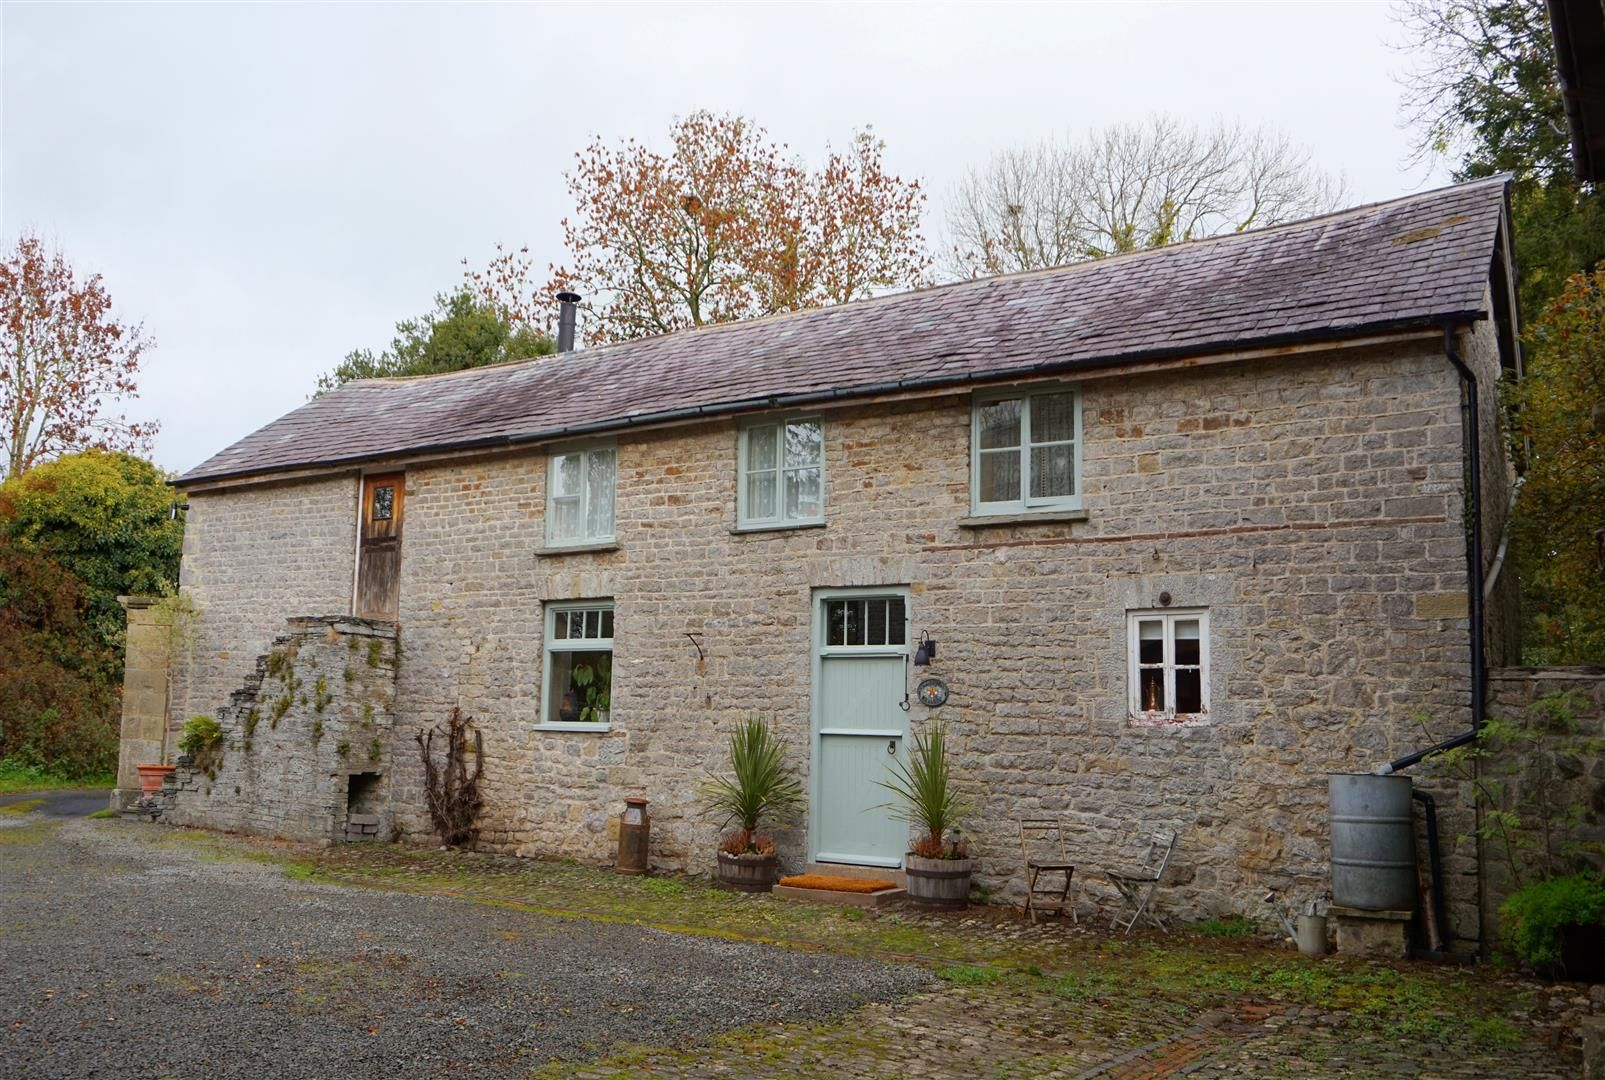 3 bed detached for sale in Presteigne, LD8